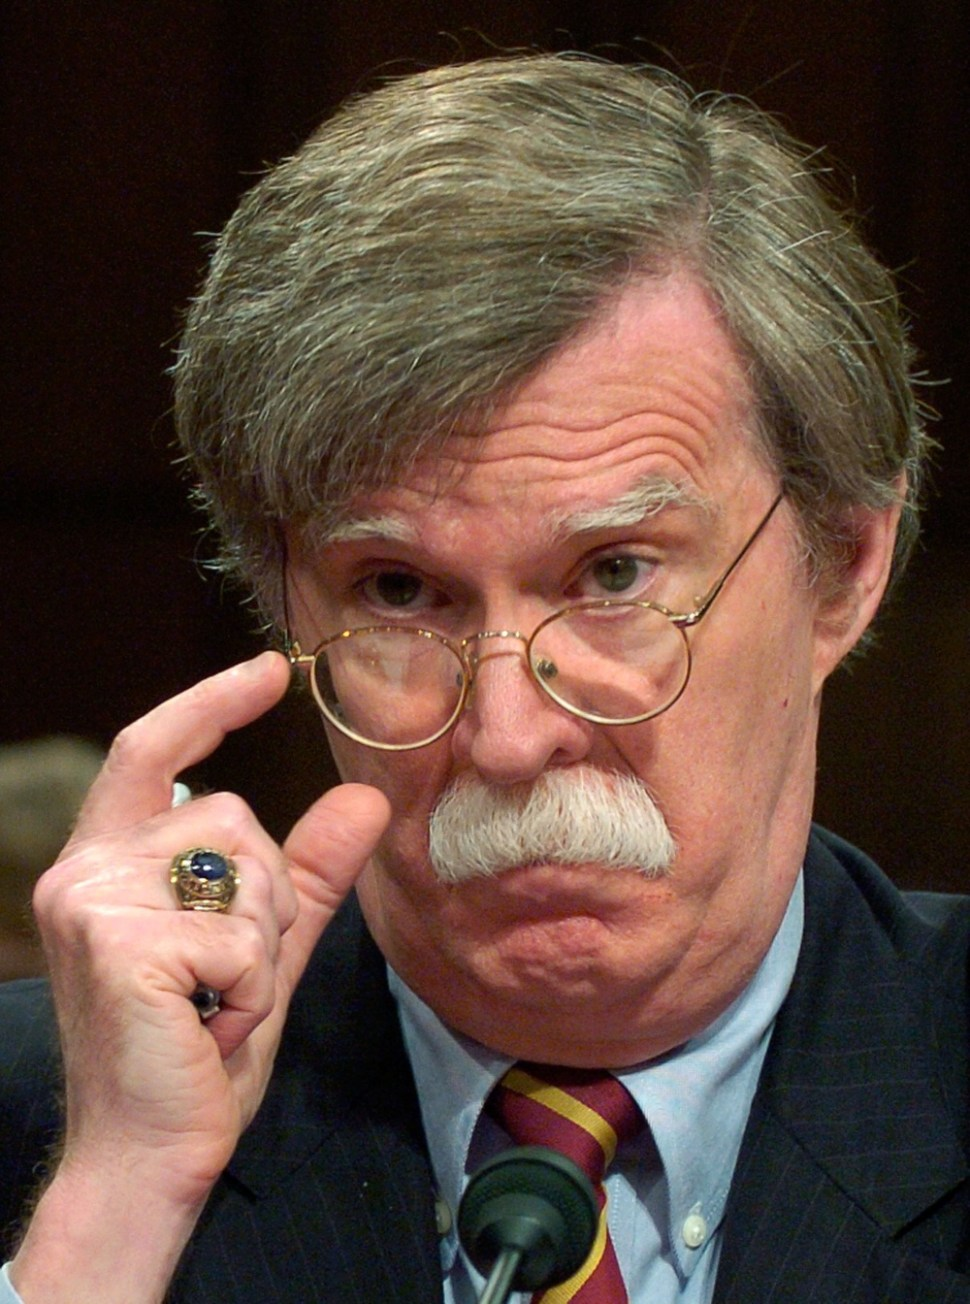 John Bolton testifies before the Senate Foreign Relations Committee in Washington, 2006. REUTERS/Jonathan Ernst